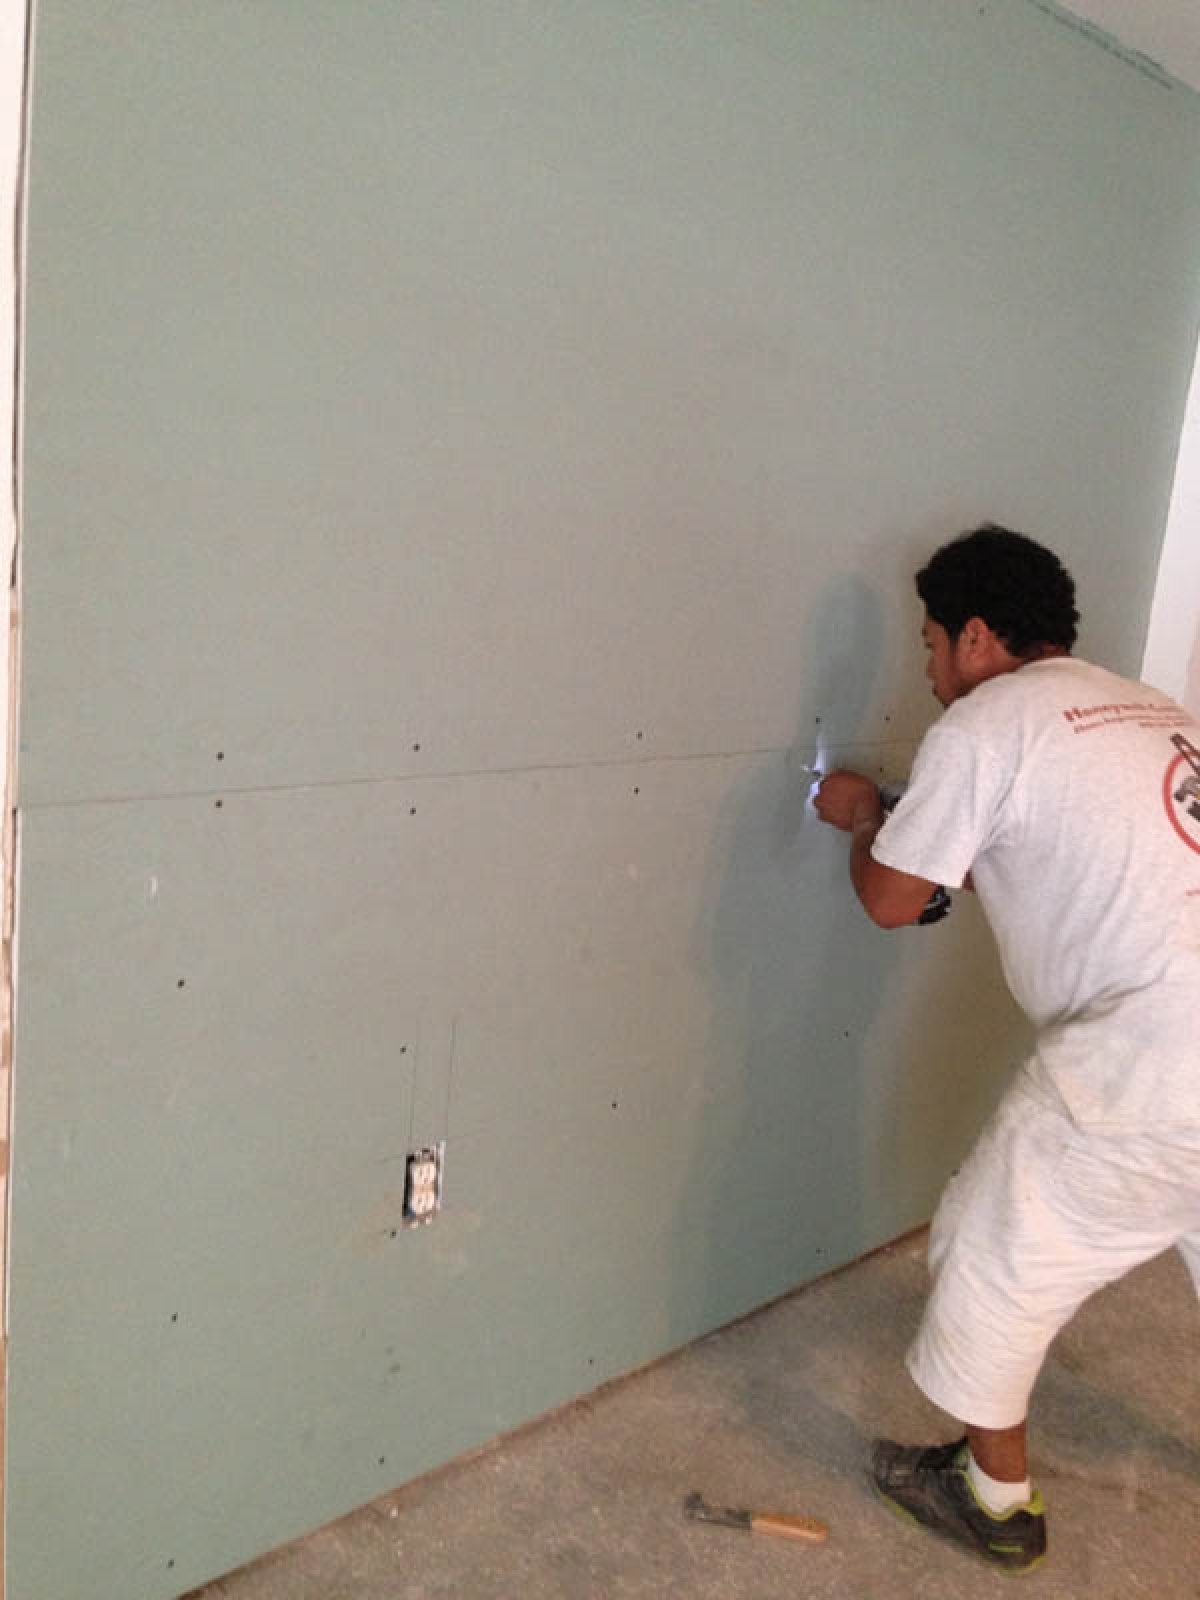 DRYWALL WORK PROJECT